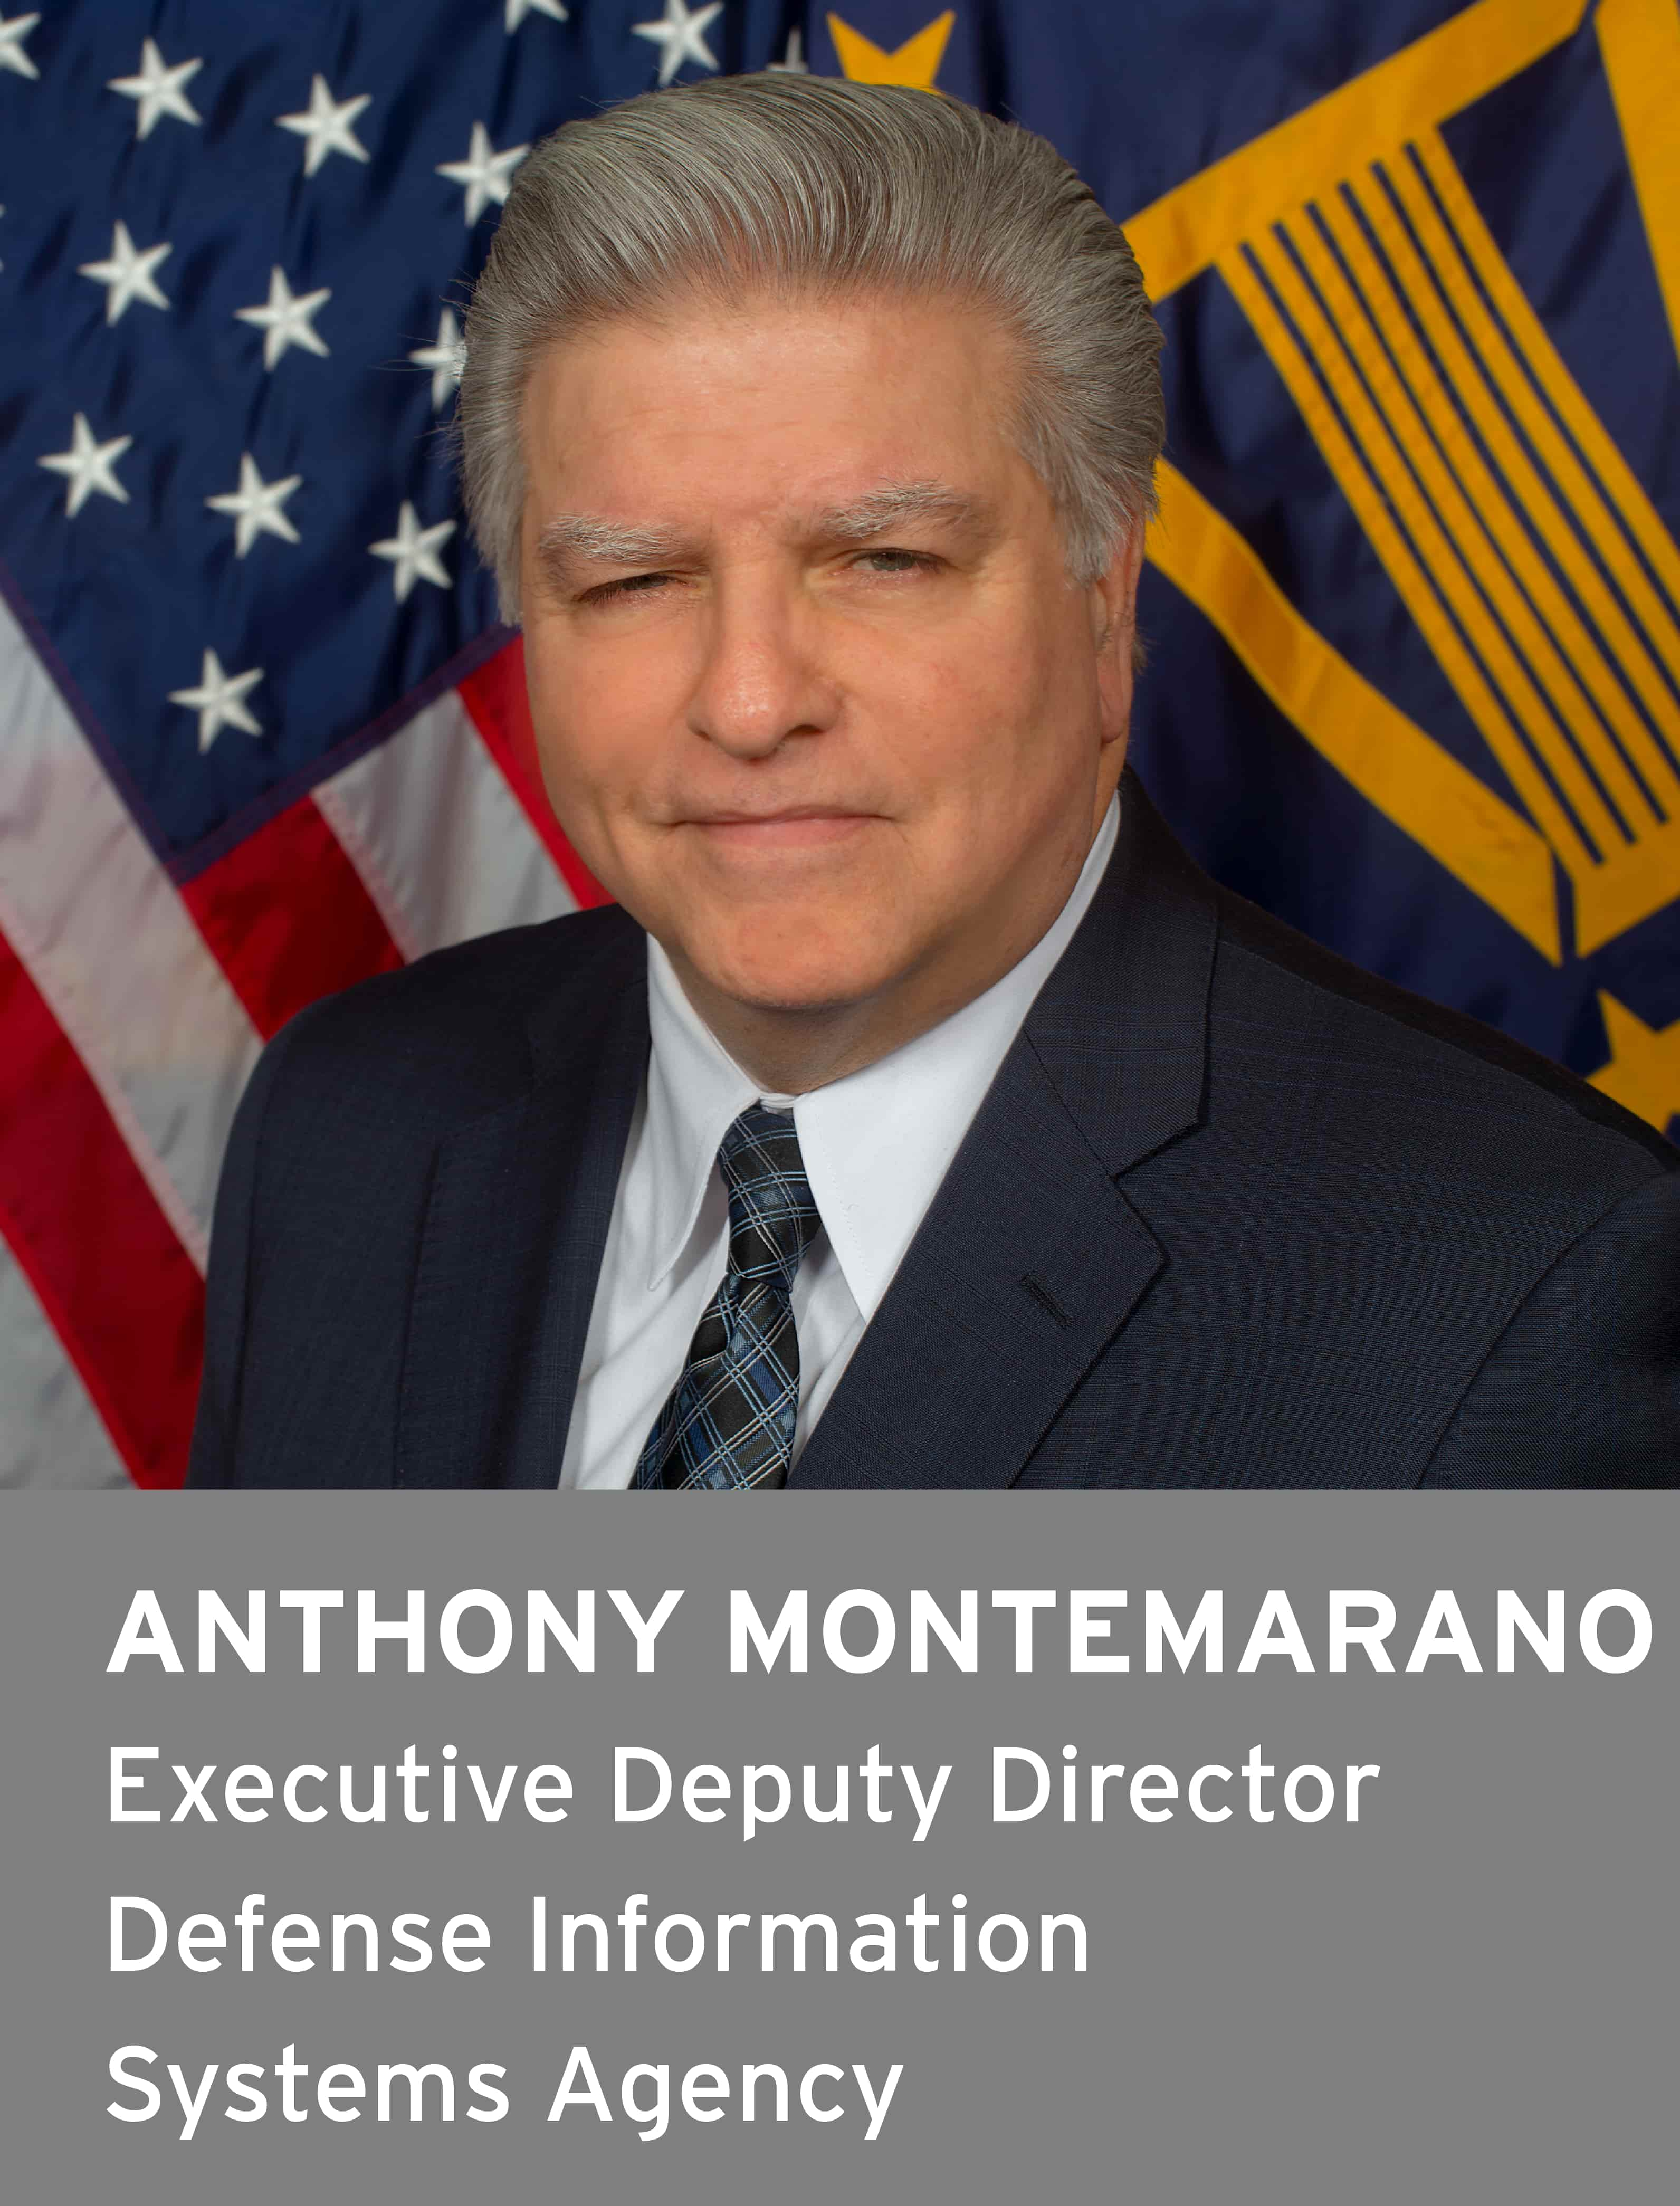 Anthony Montemarano, Executive Deputy Director, Defense Information Systems Agency